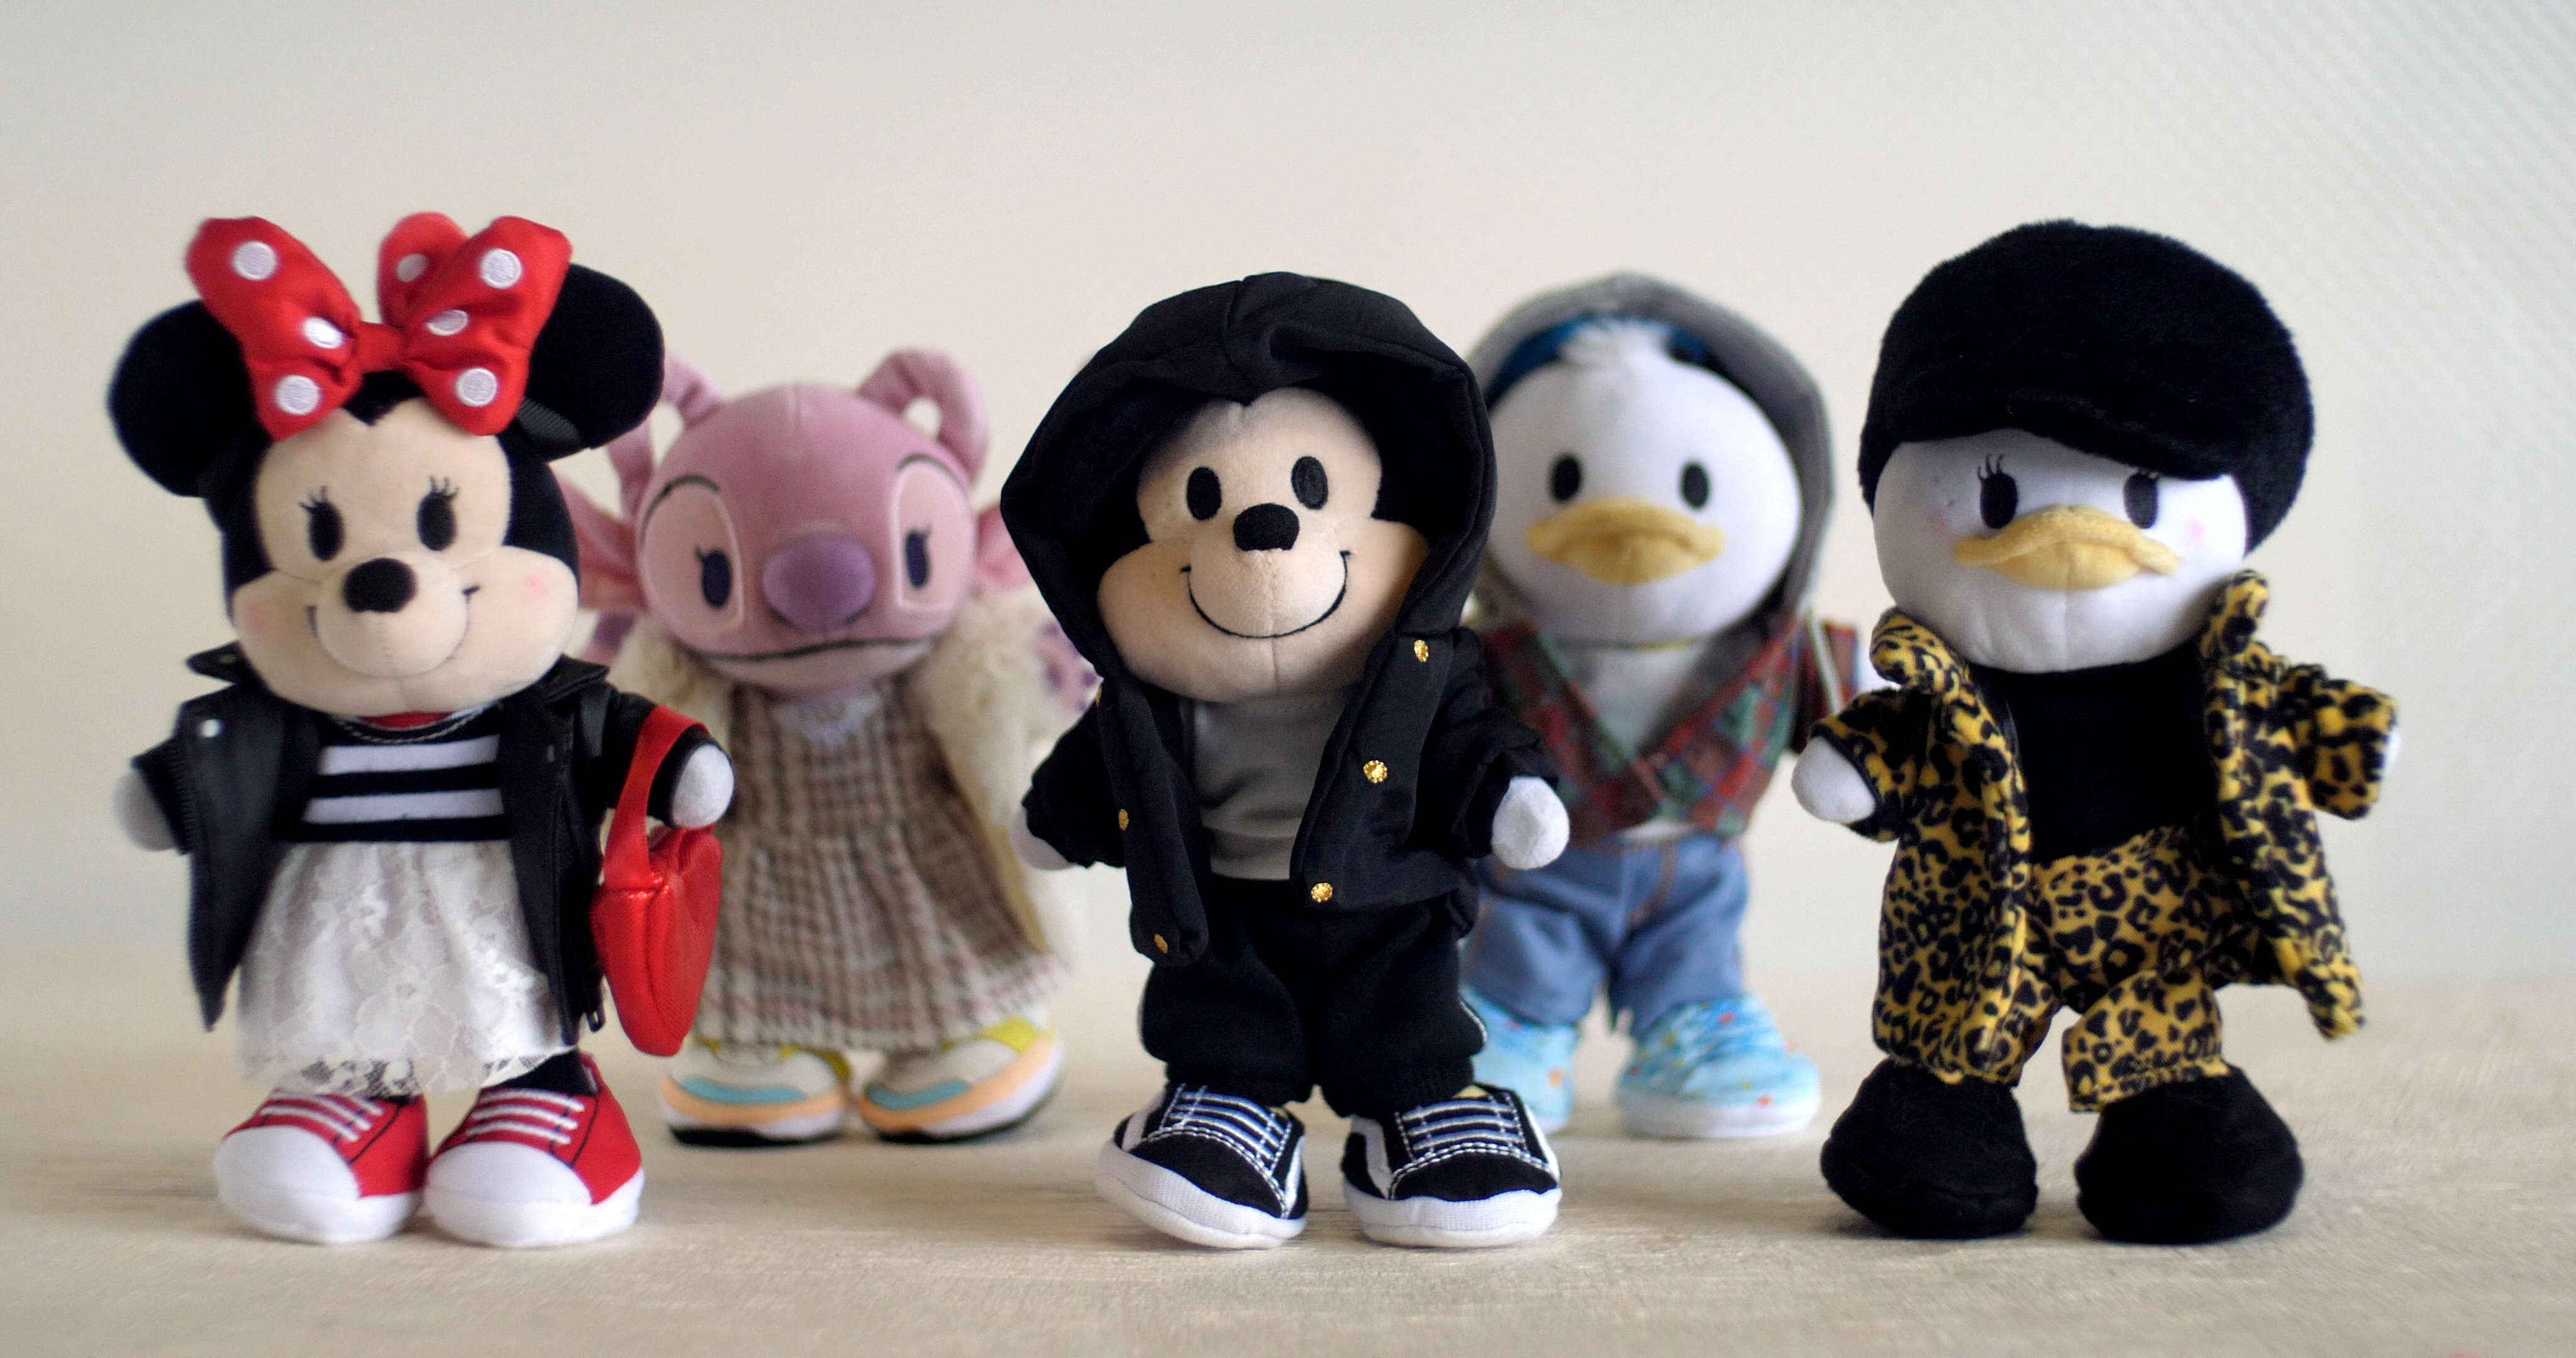 Get Ready to Meet Your New Best Friends: Disney nuiMOs